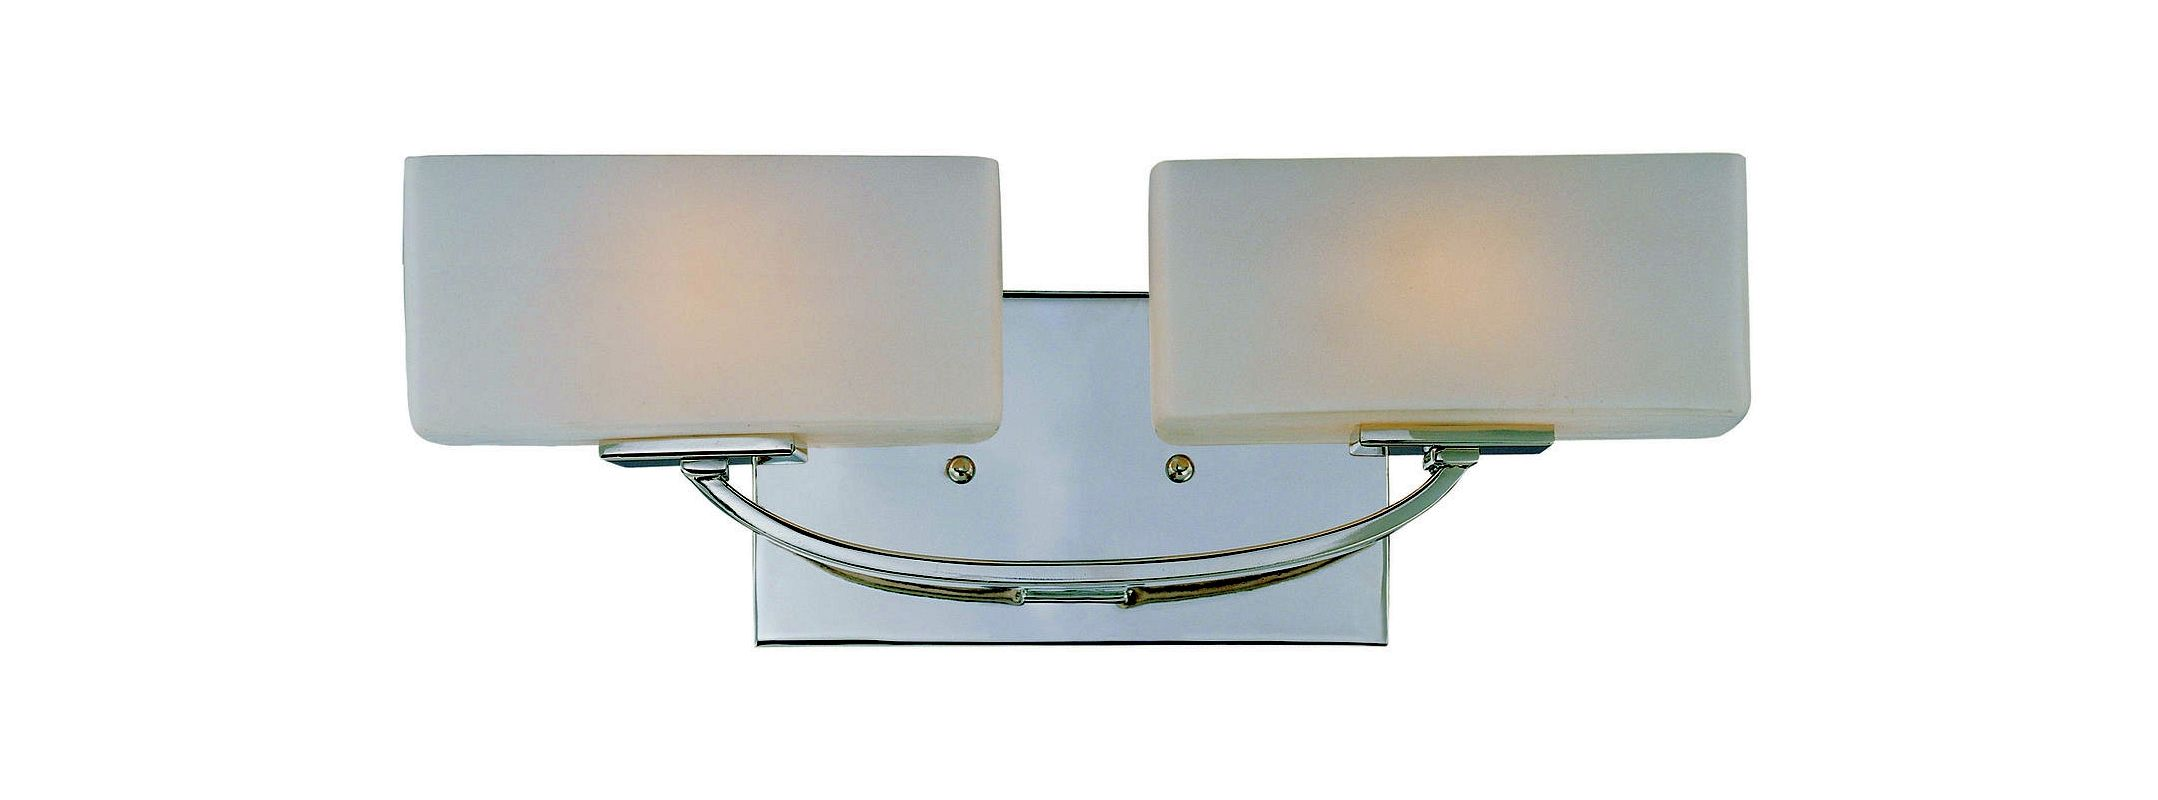 "Savoy House 8-7040-2 Nordic 16.25"" Wide 2 Light Bathroom Vanity Light"